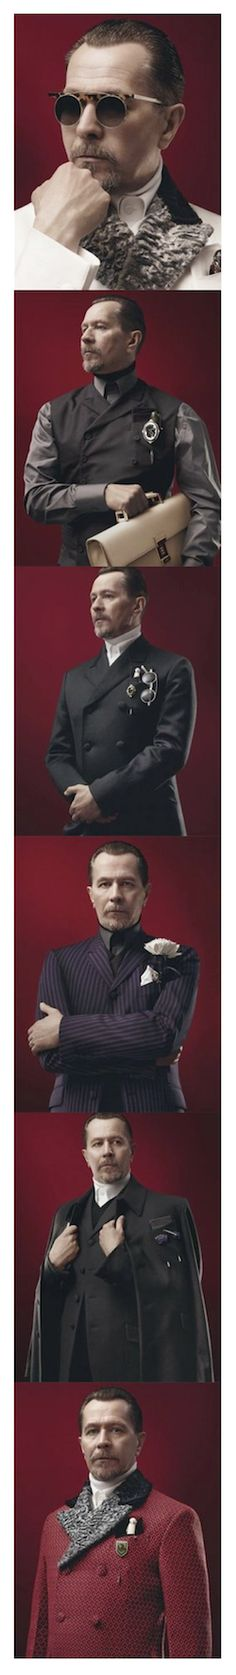 Gary Oldman for Prada, 2012. Despot chic! And, yes. I bloody well would!